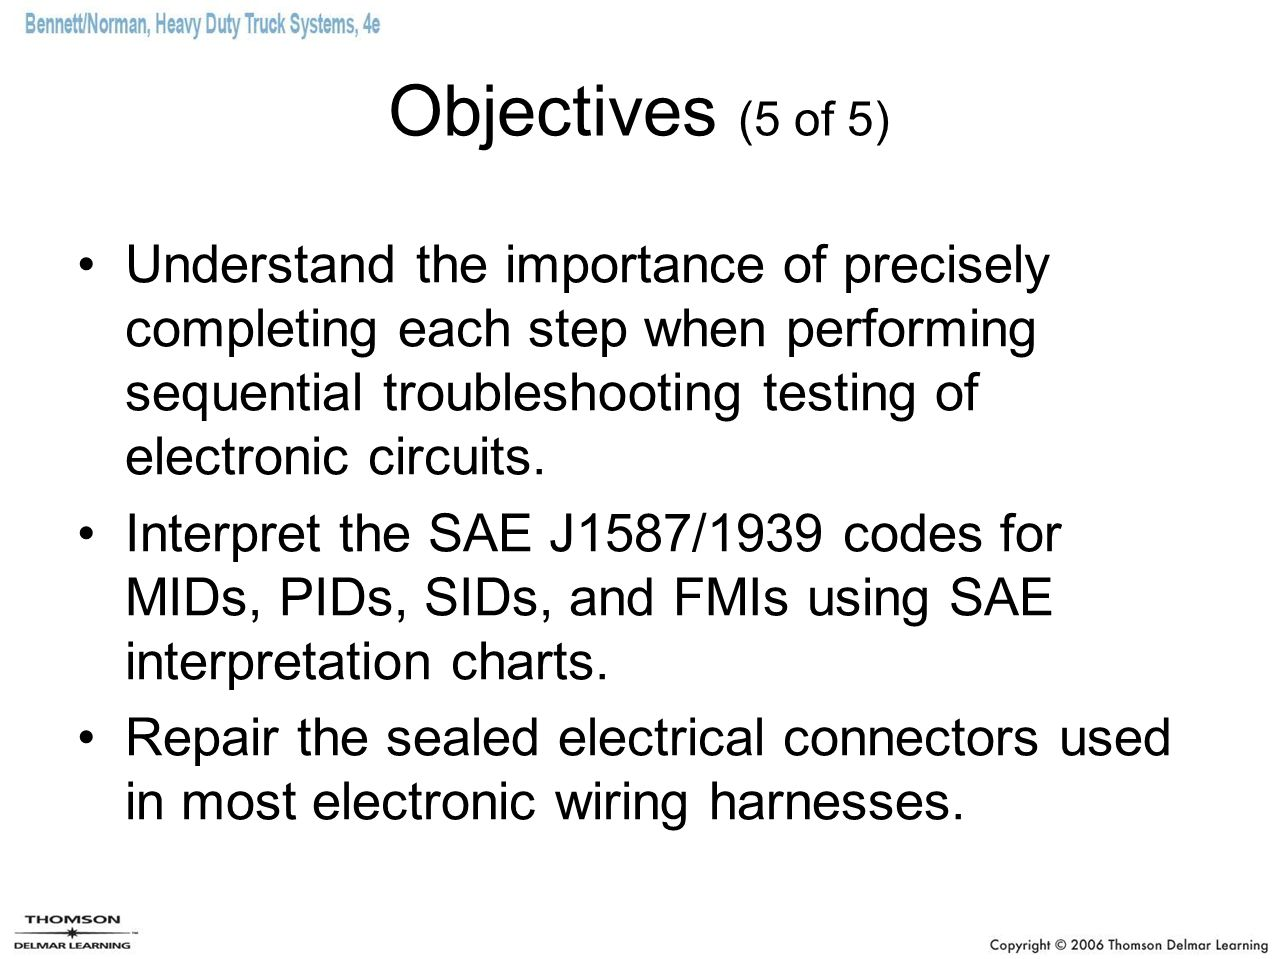 Objectives (5 of 5)